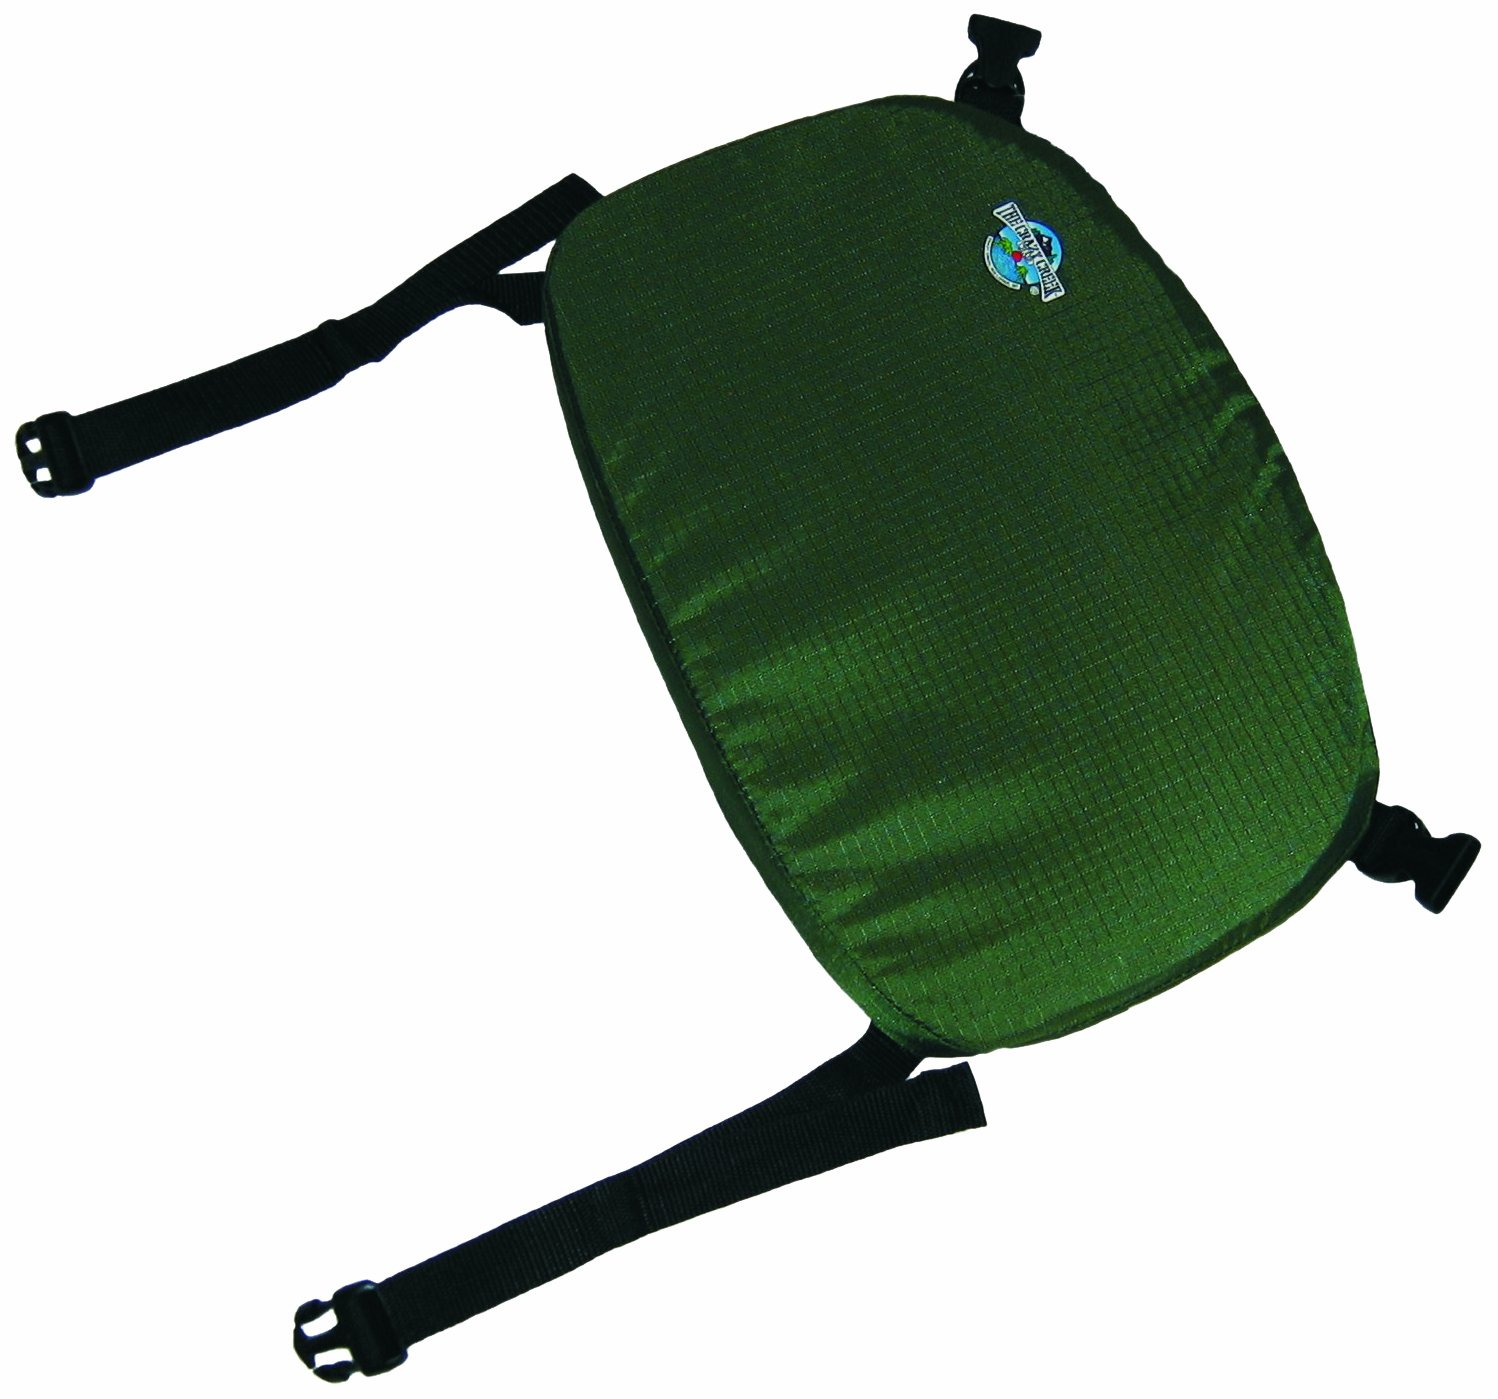 Amazon.com : Crazy Creek Canoe Pad III Cushion, Forest : Camping Chairs :  Sports U0026 Outdoors